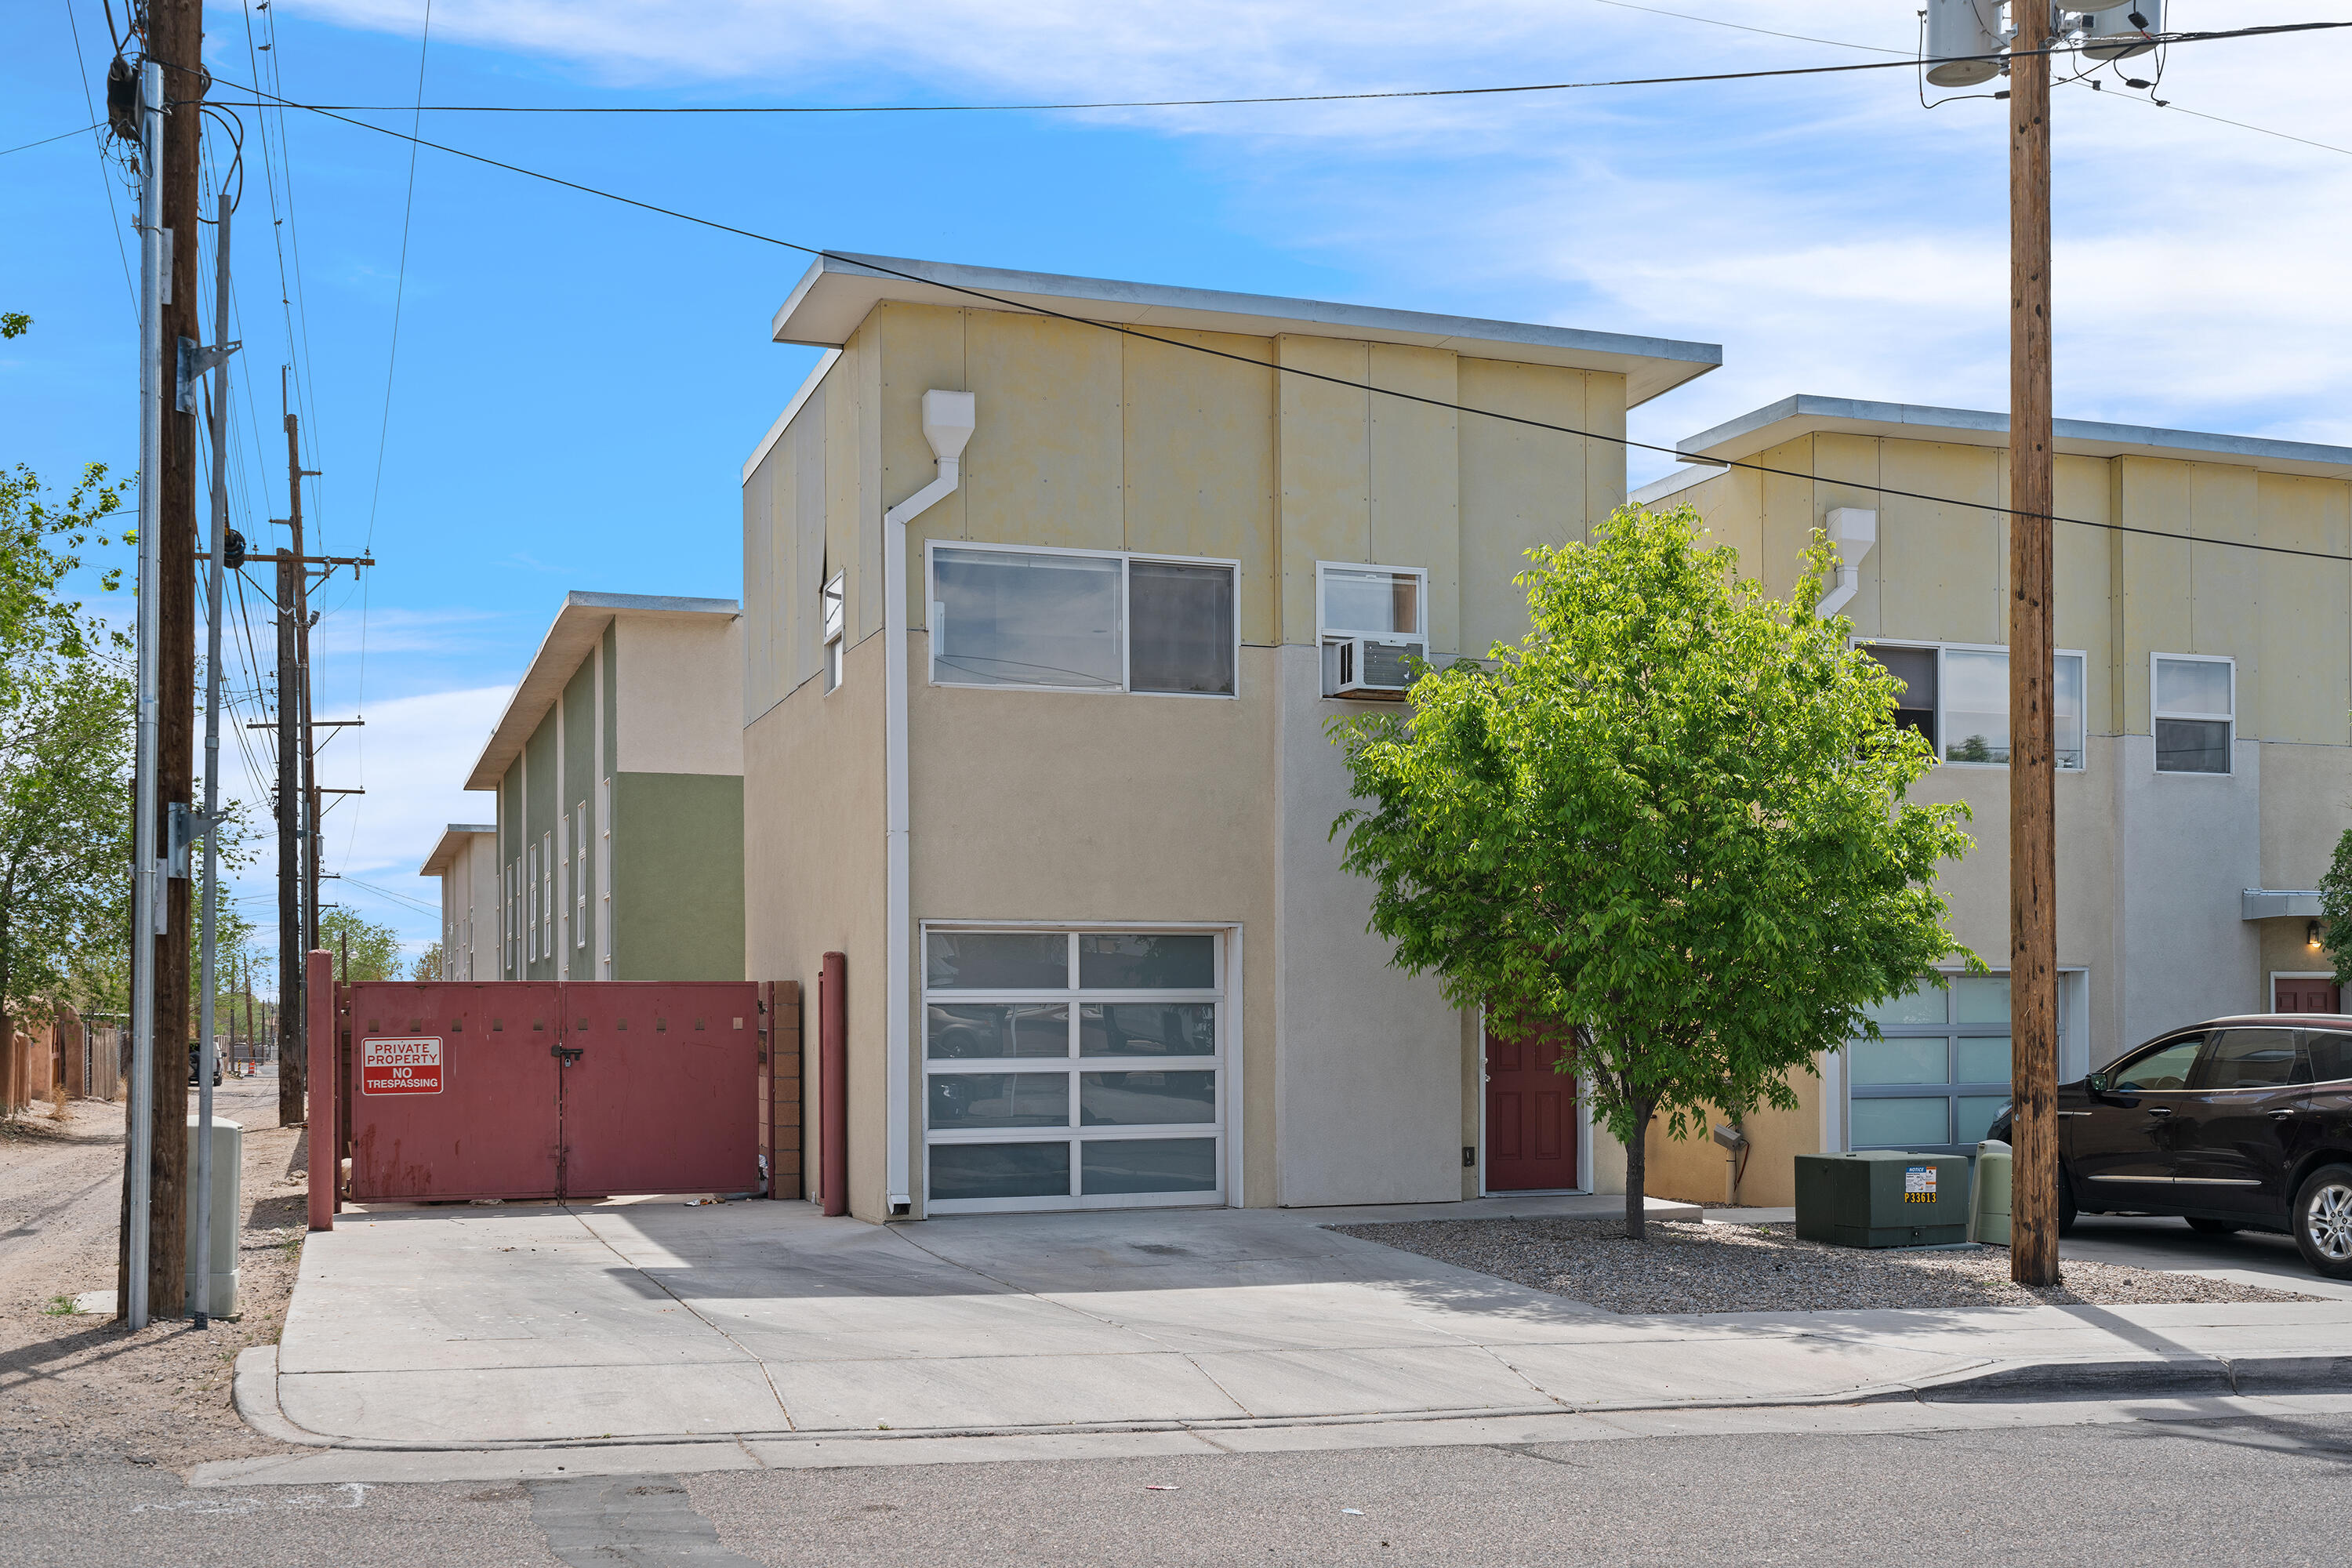 Conveniently located near central Downtown/UNM area, across the street from the neighborhood coffee shop! Boasting a beautifully open floor plan, this studio has a lot of natural lighting. Complete with a fully equipped Kitchen and downstairs a utility room with stackable washer and dryer. This condo is one of the few DETTACHED condos within this condo association and has its own garage and backyard. Garage has an electrical heater installed and previous owner used it as the bedroom and upstairs as living space! (Garage 13'10'' x 18'6'' 224Sqft) Come see this amazing condo and get creative with your new living space!